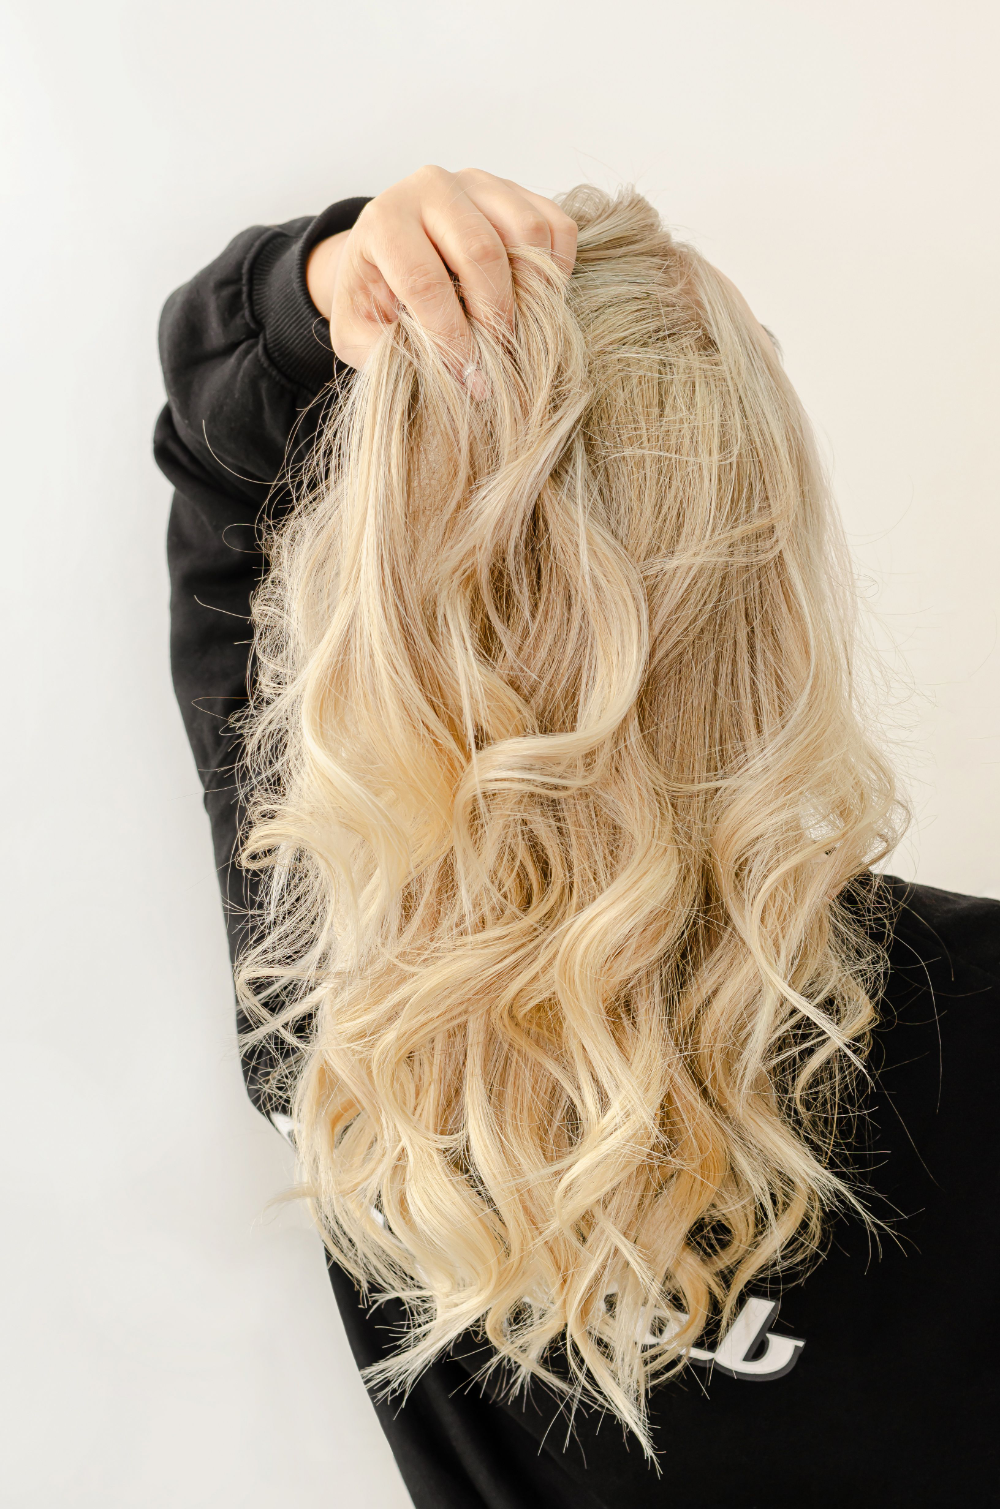 How I Salvaged My Bleached Hair After A Disaster At The Salon Part Ii In 2020 Bleached Hair Bleach Blonde Hair Curly Hair Styles Naturally